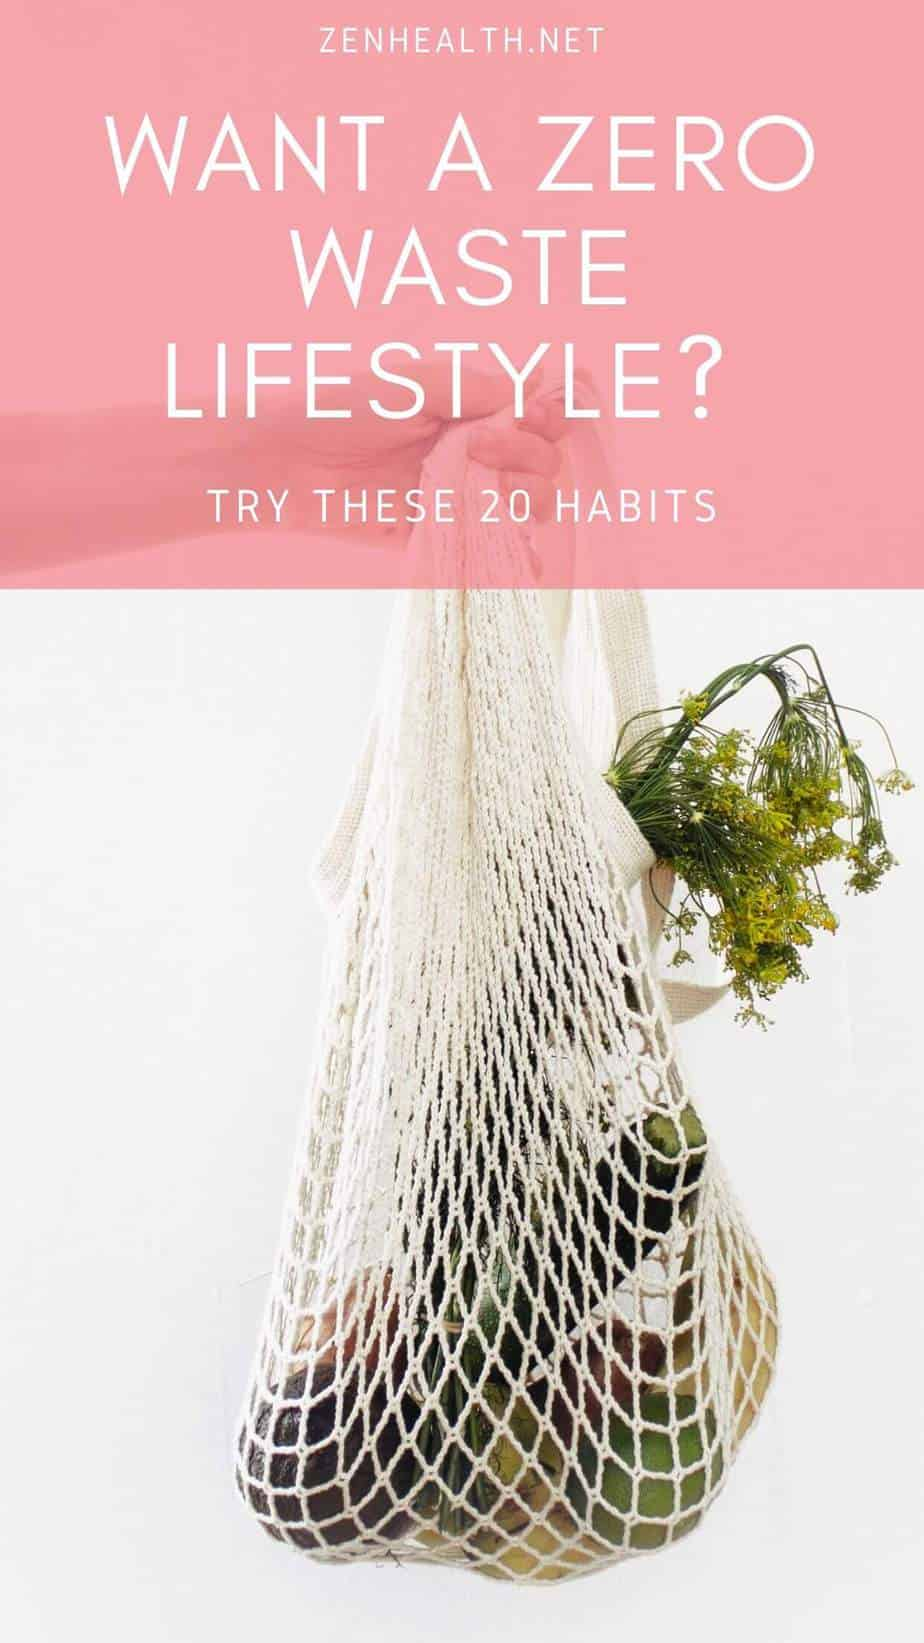 Want A Zero Waste Lifestyle? Start With These 20 Habits. #zerowaste #zerowastelifestyle